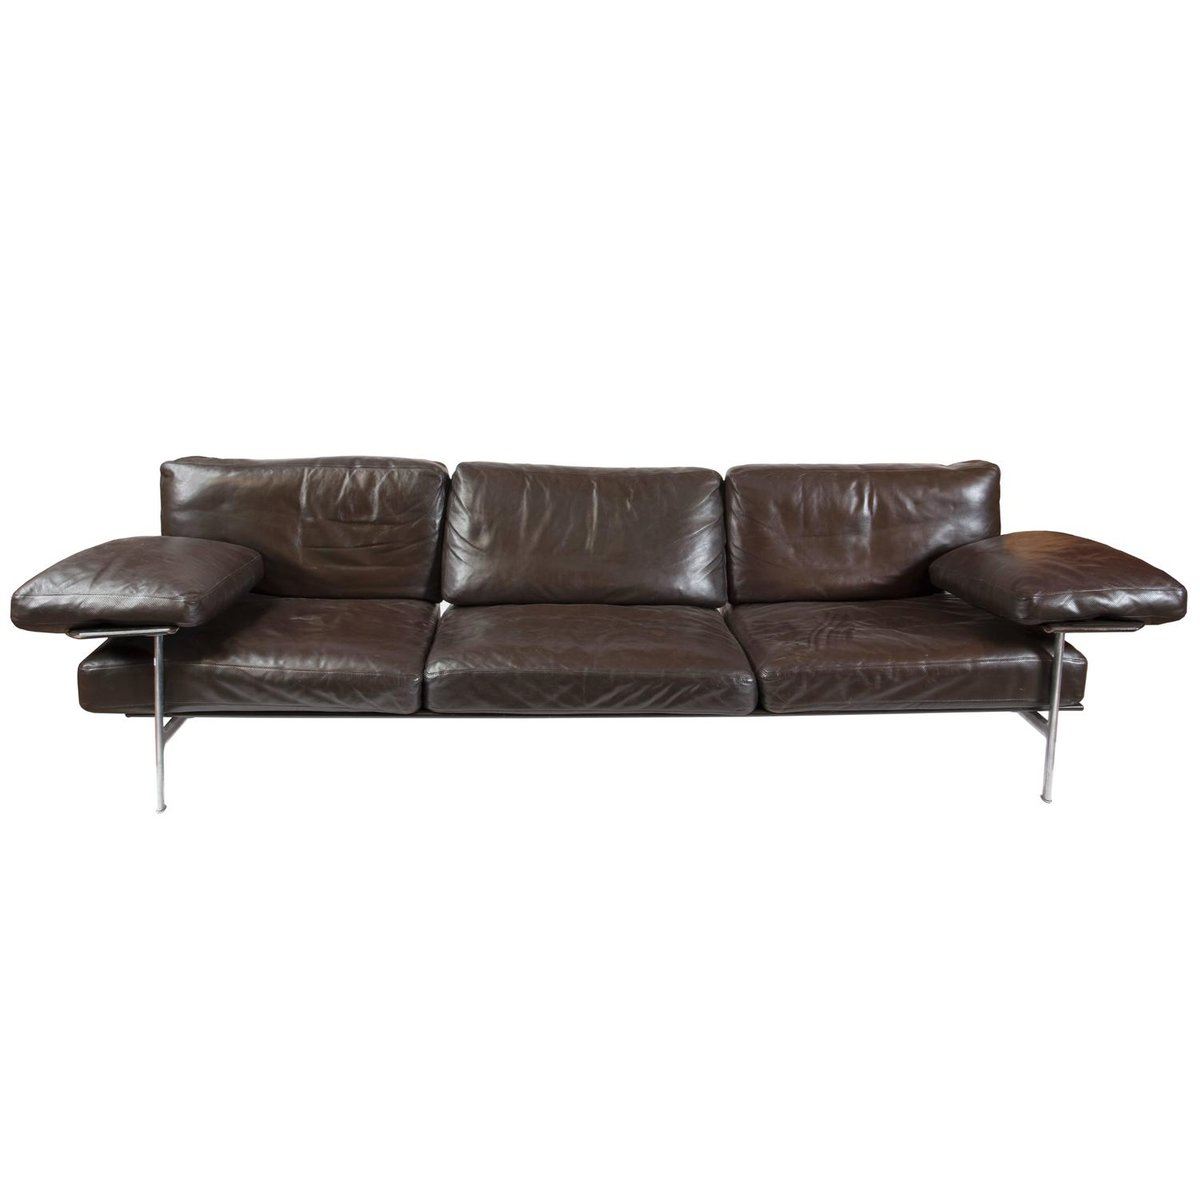 Diesis Sofa By Antonio Citterio And Paolo Nava For B B Italia 1970s For Sale At Pamono